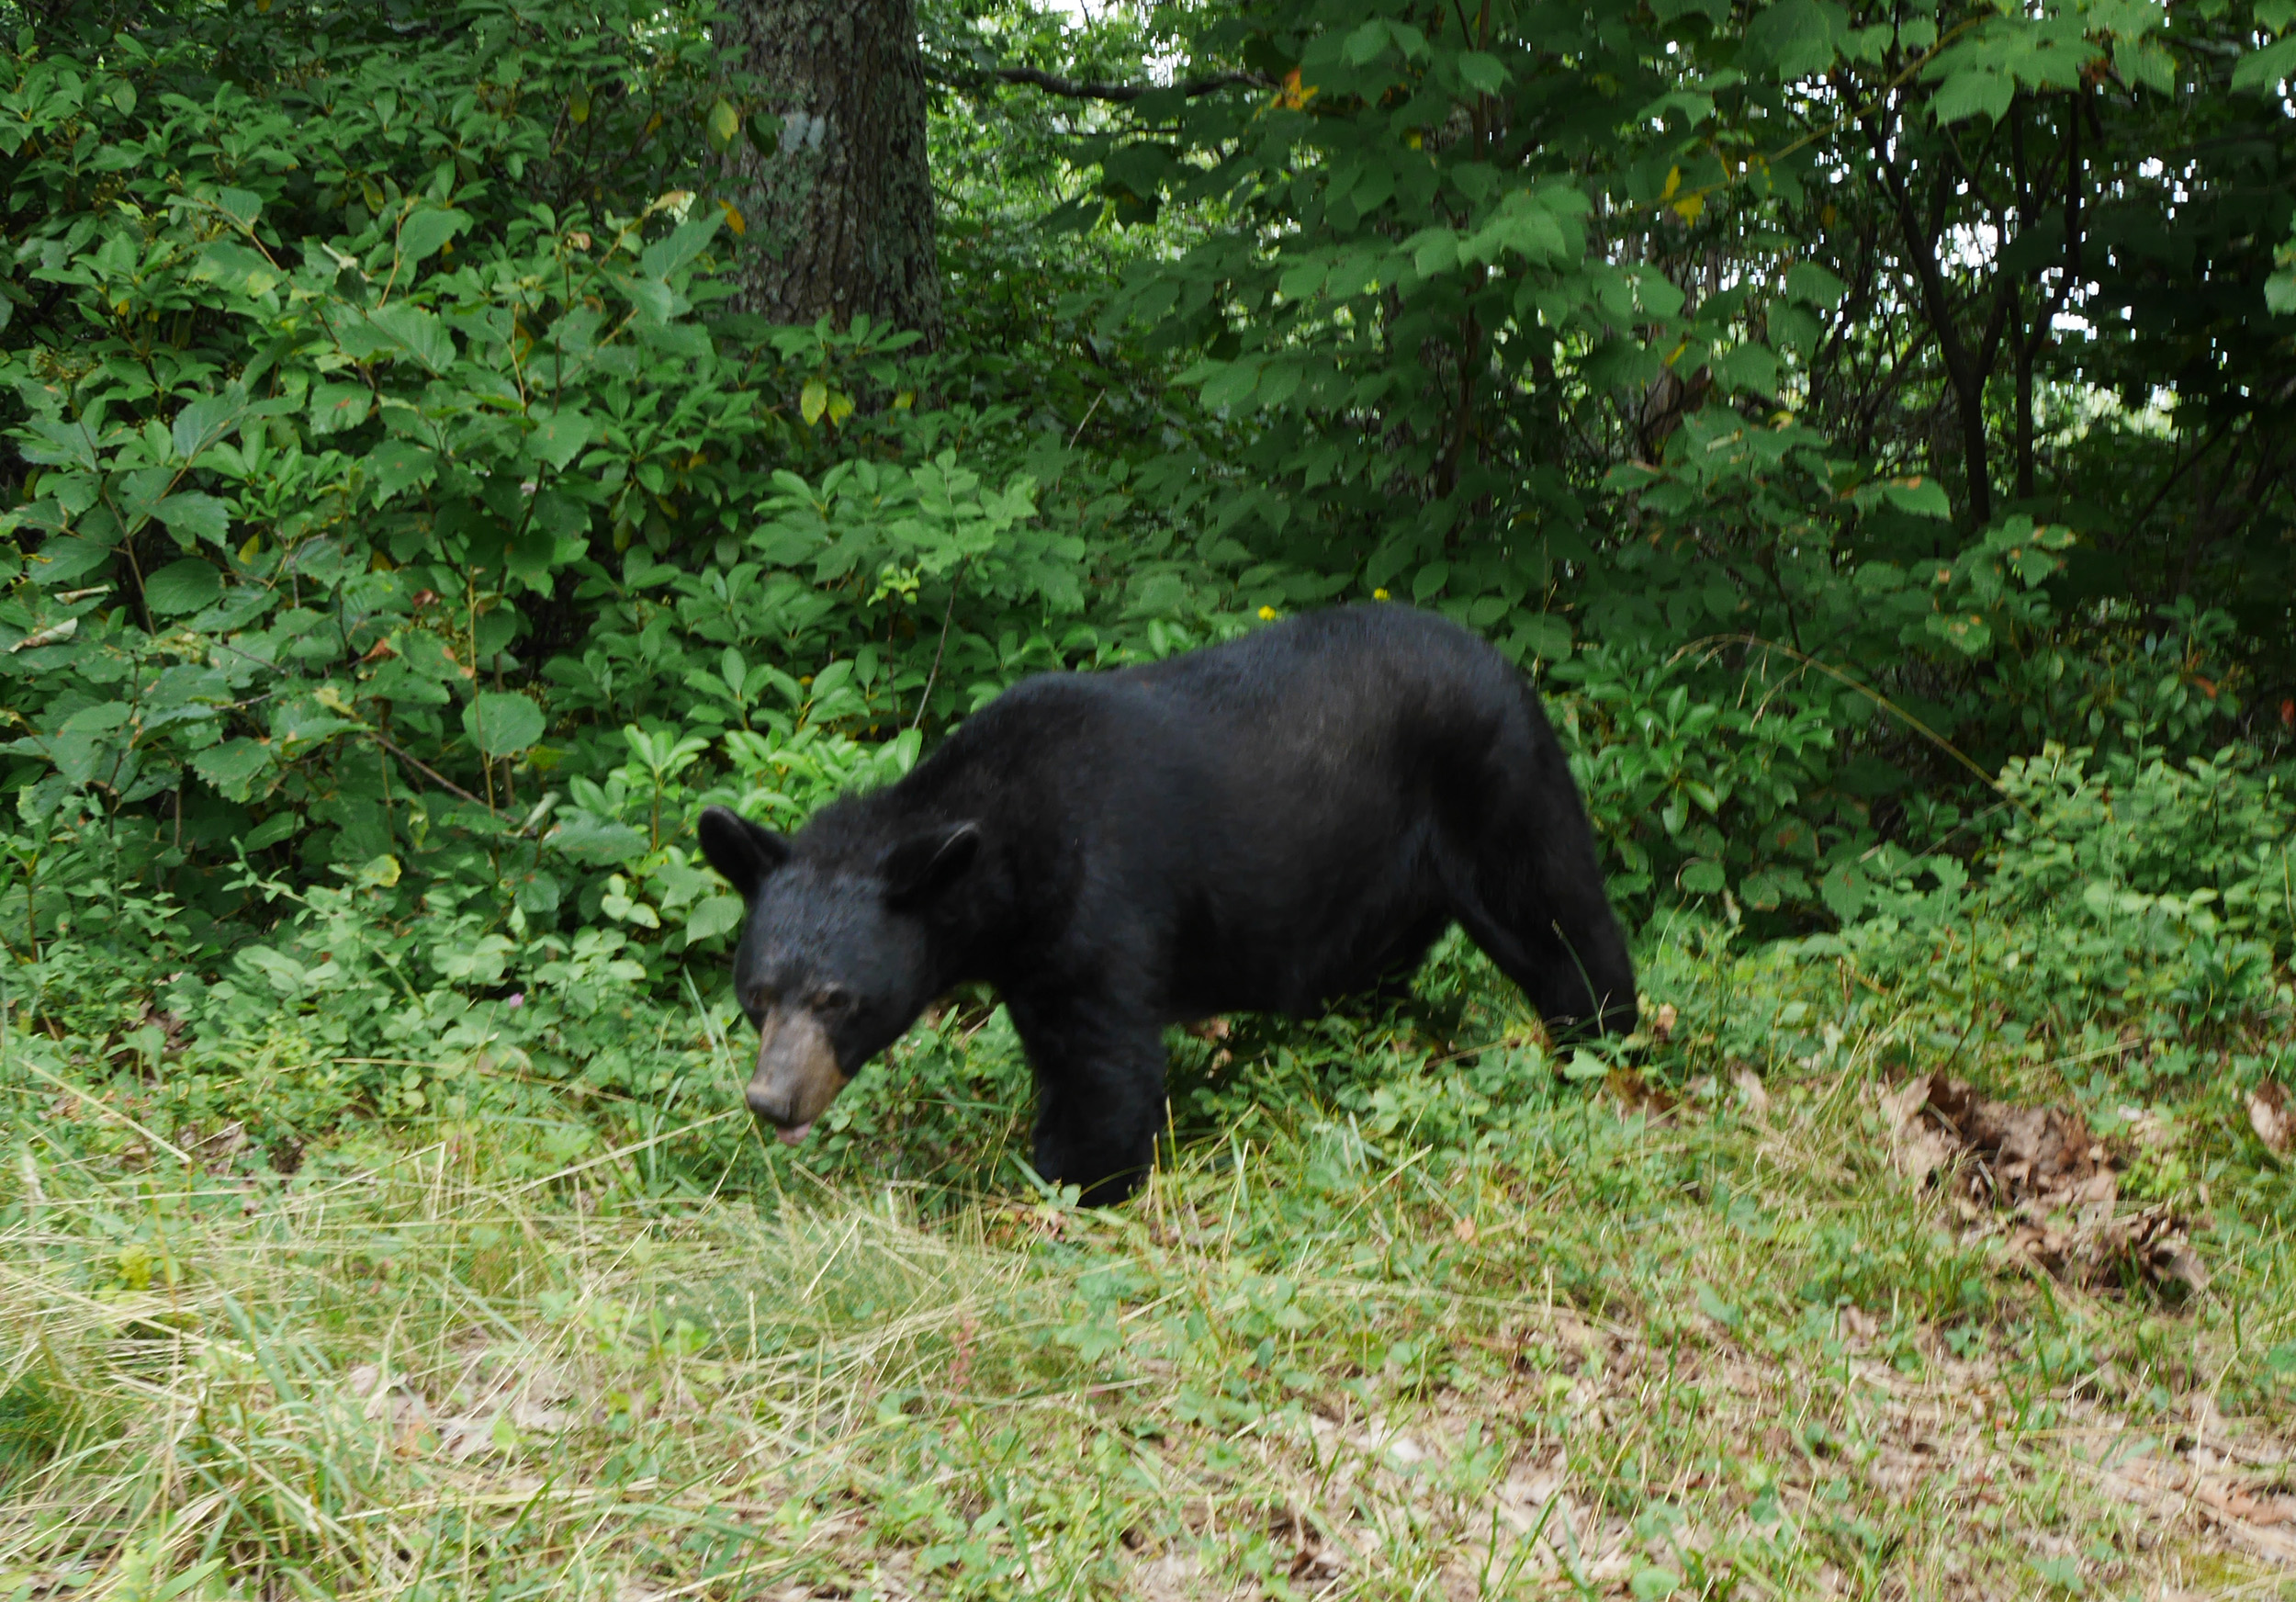 Bear in Shenandoah